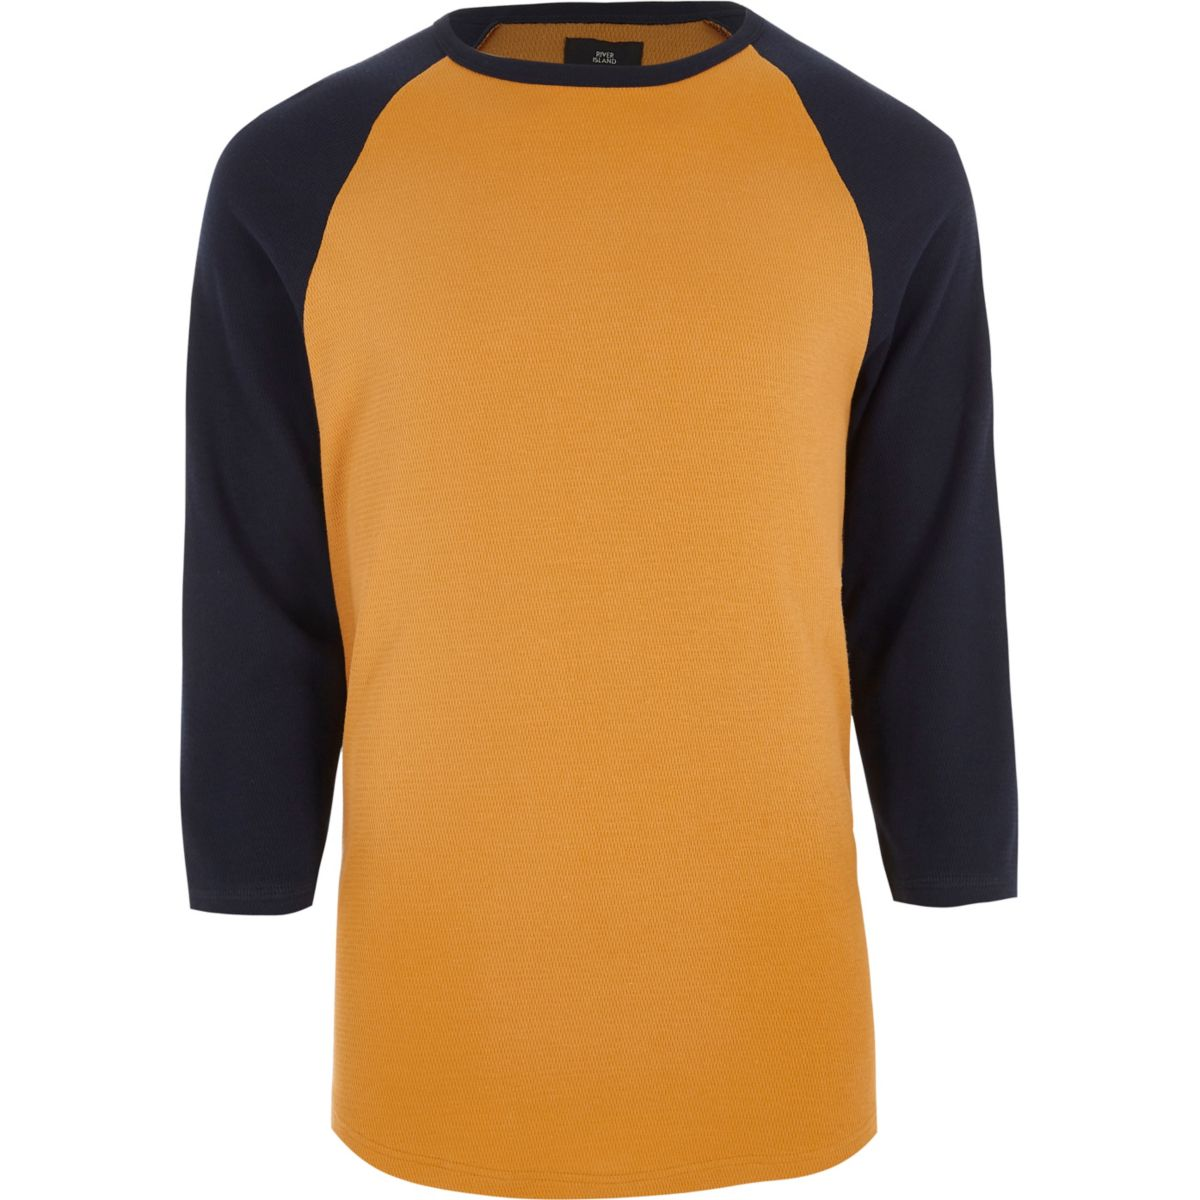 Yellow three quarter raglan sleeve T-shirt